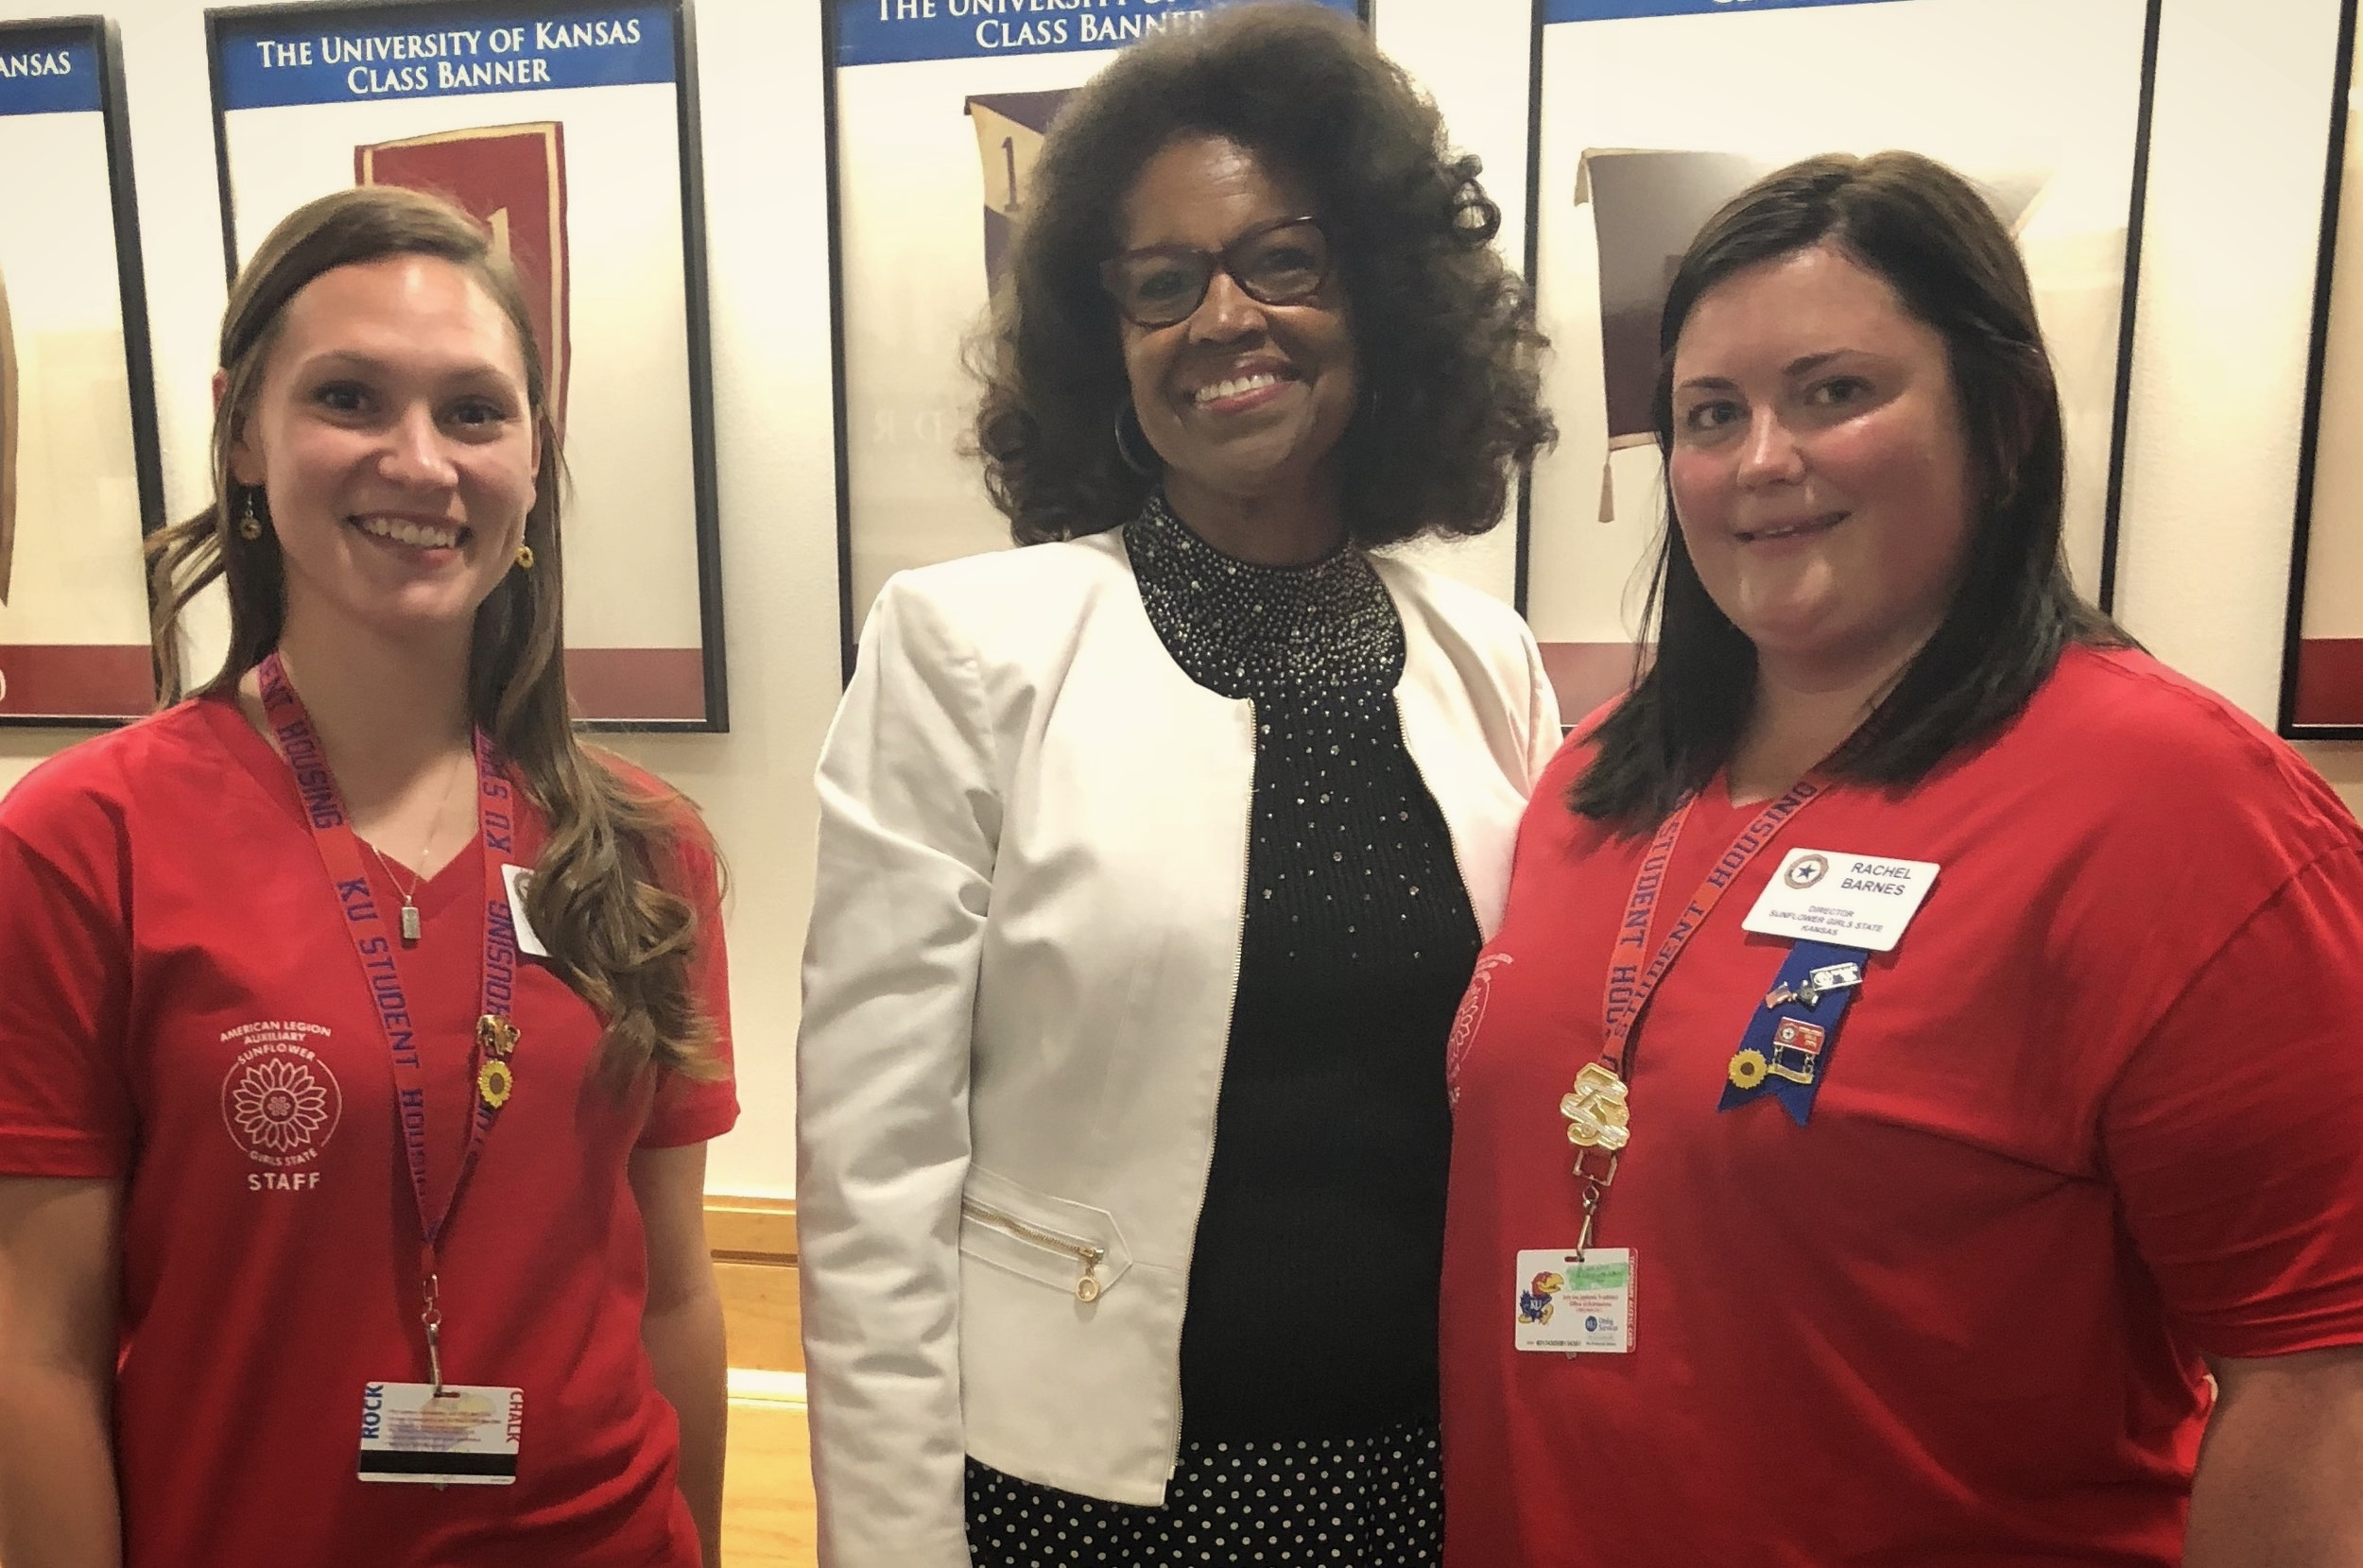 Assistant Director Lindsay Maudlin and Director Rachel Barnes with distinguished guest Dr. Barbara Ballard.